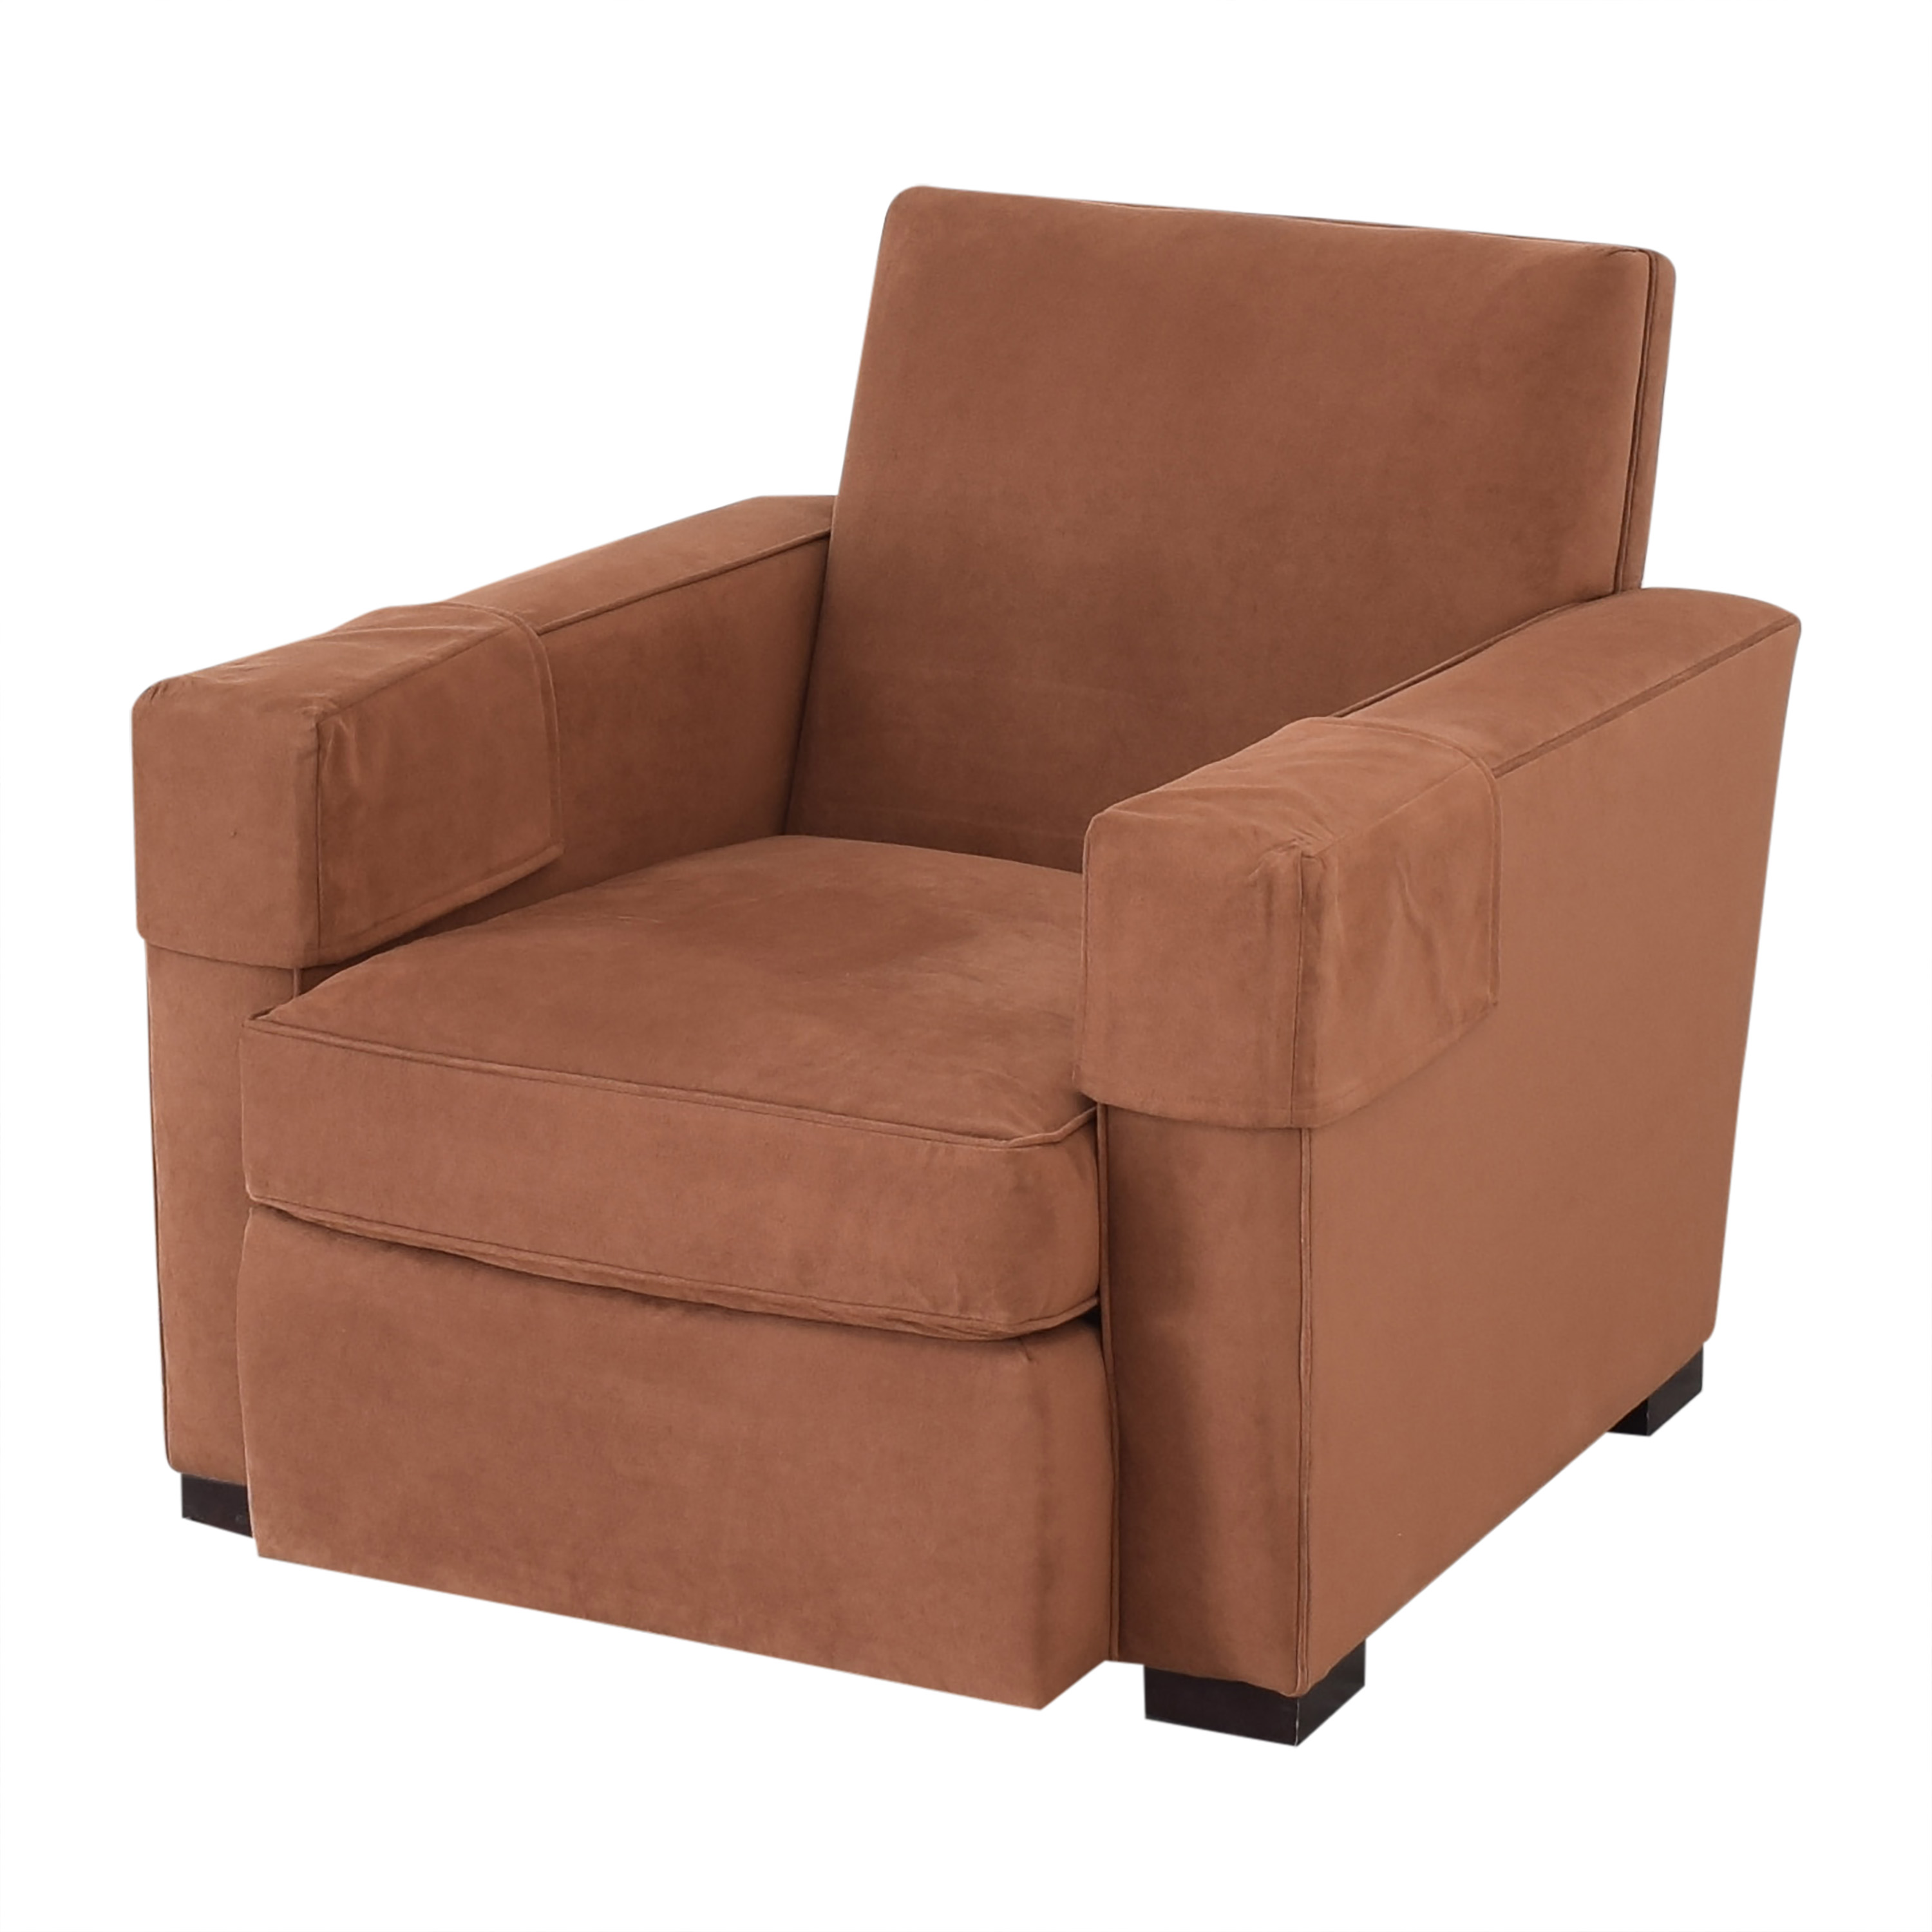 shop Hickory Chair Hickory Chair Ultra Suede Chair and Ottoman online